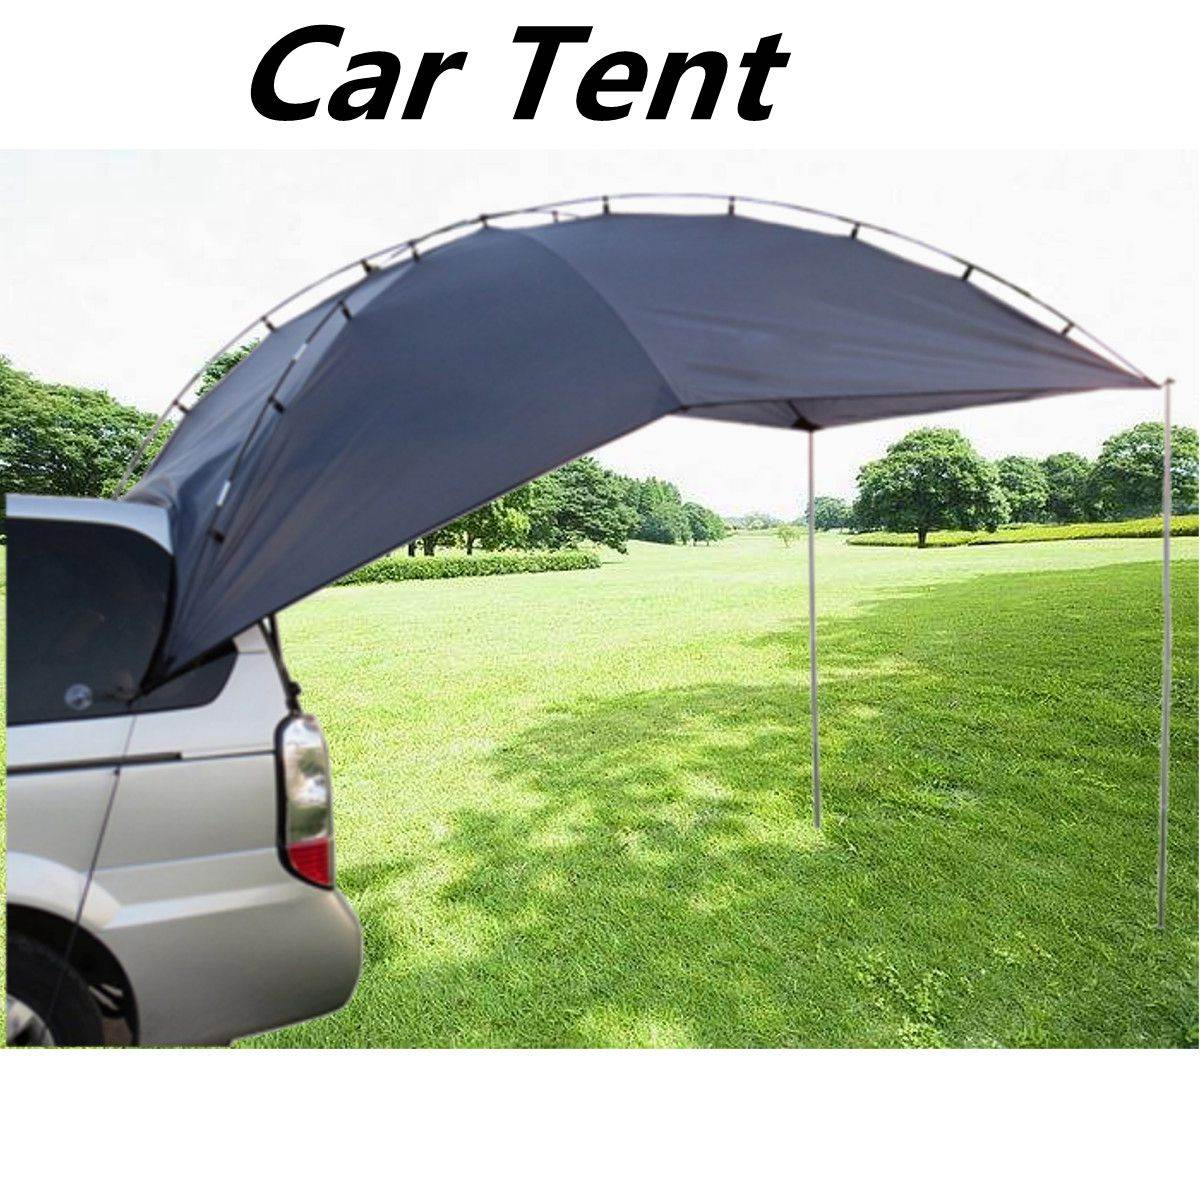 camping sunshade portable beach cover sports x fishing sun for outdoor tents item awning car rainproof from canopy in shelter tent